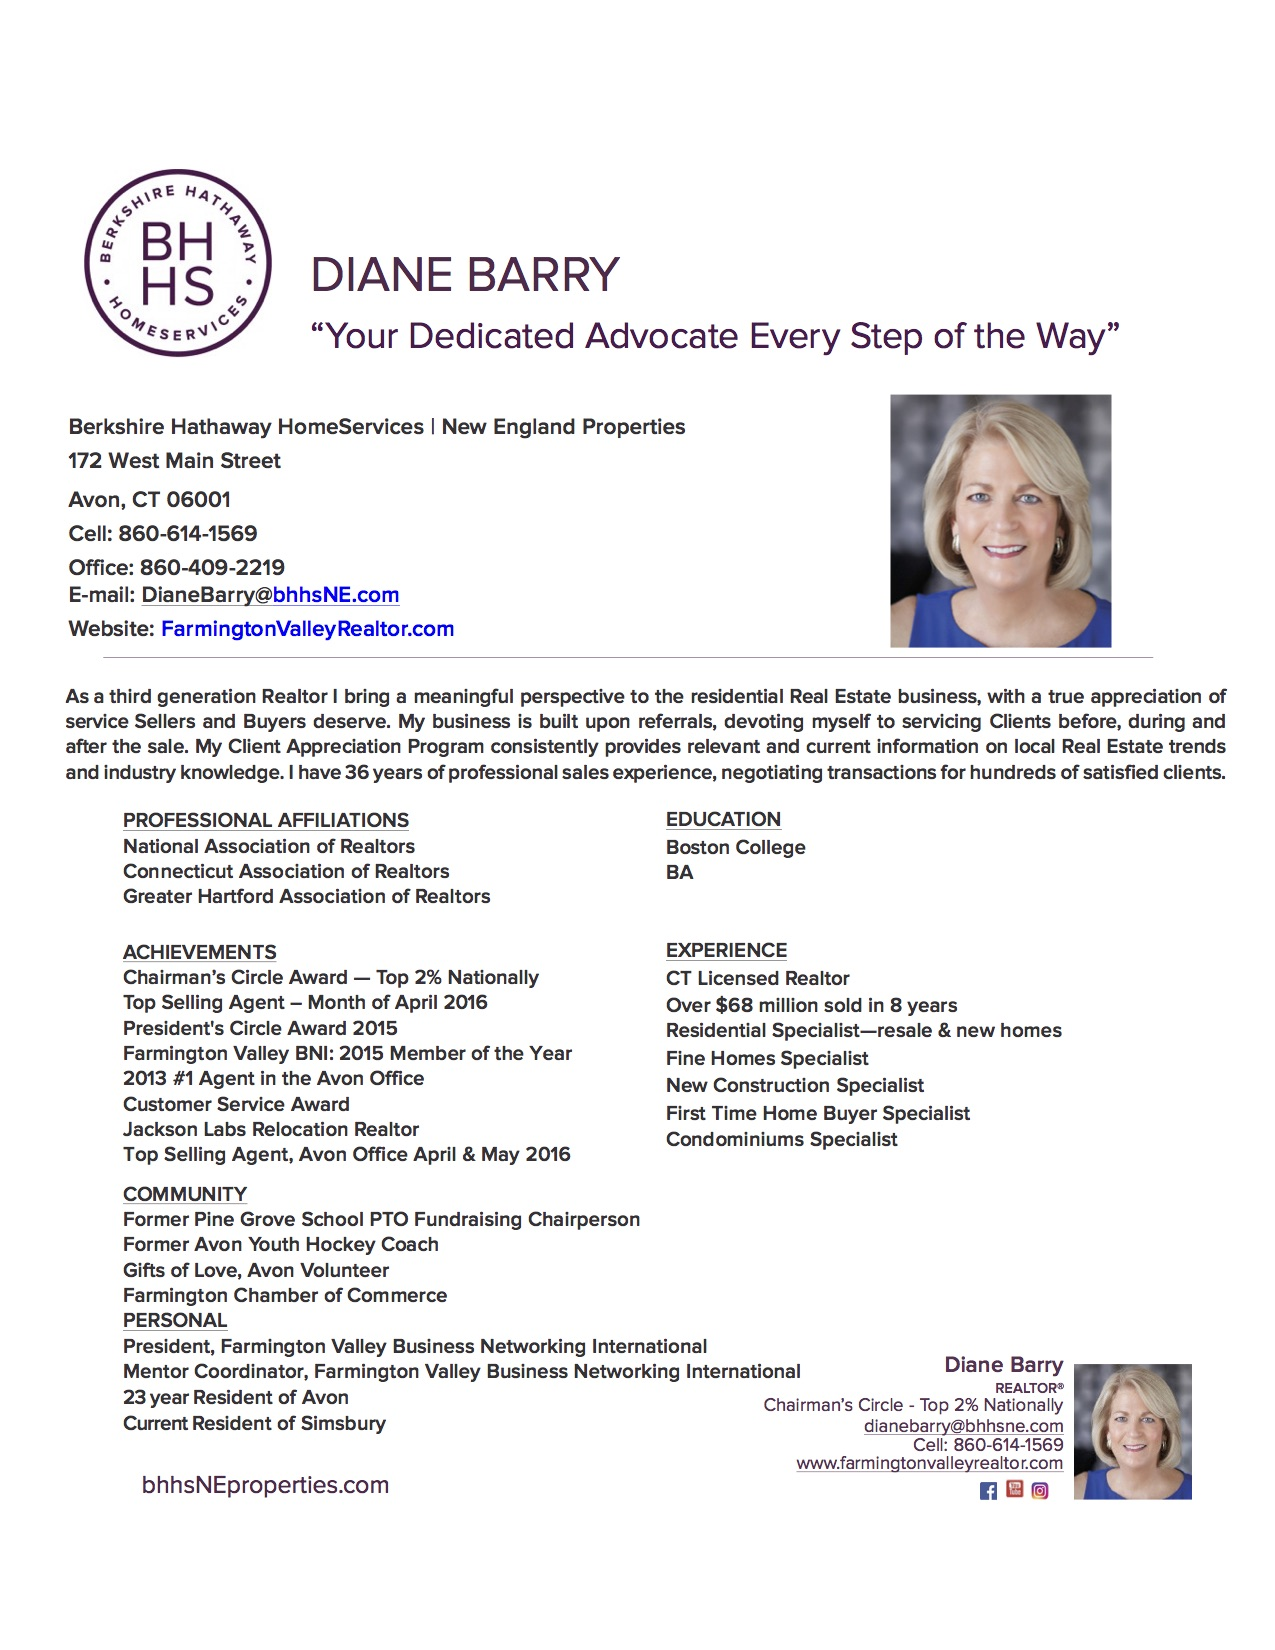 resume diane barry realtor